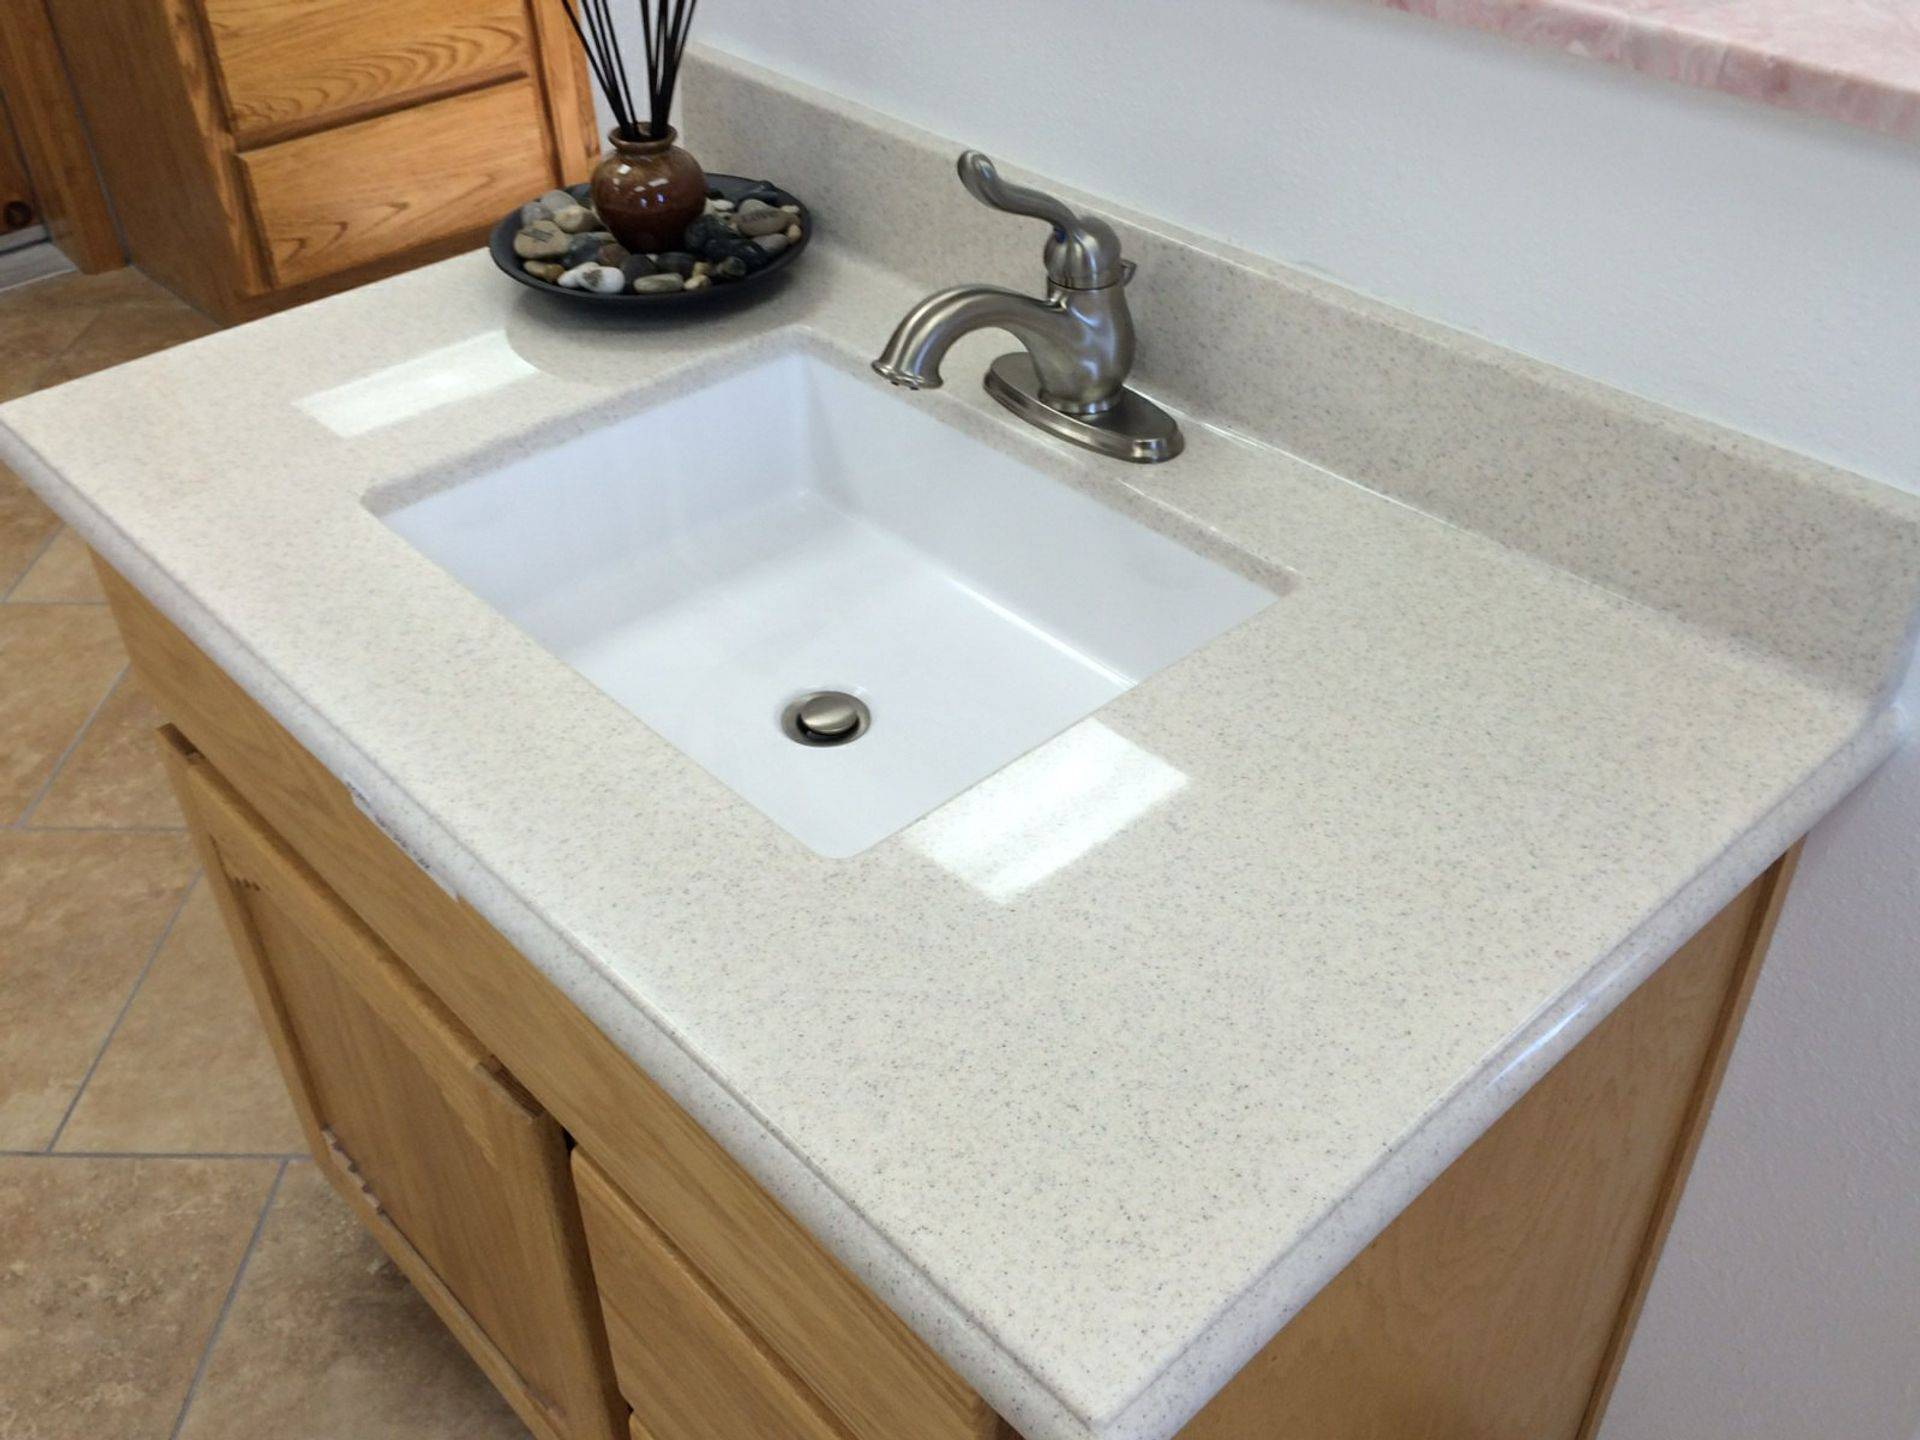 New Granite square sink with center drain